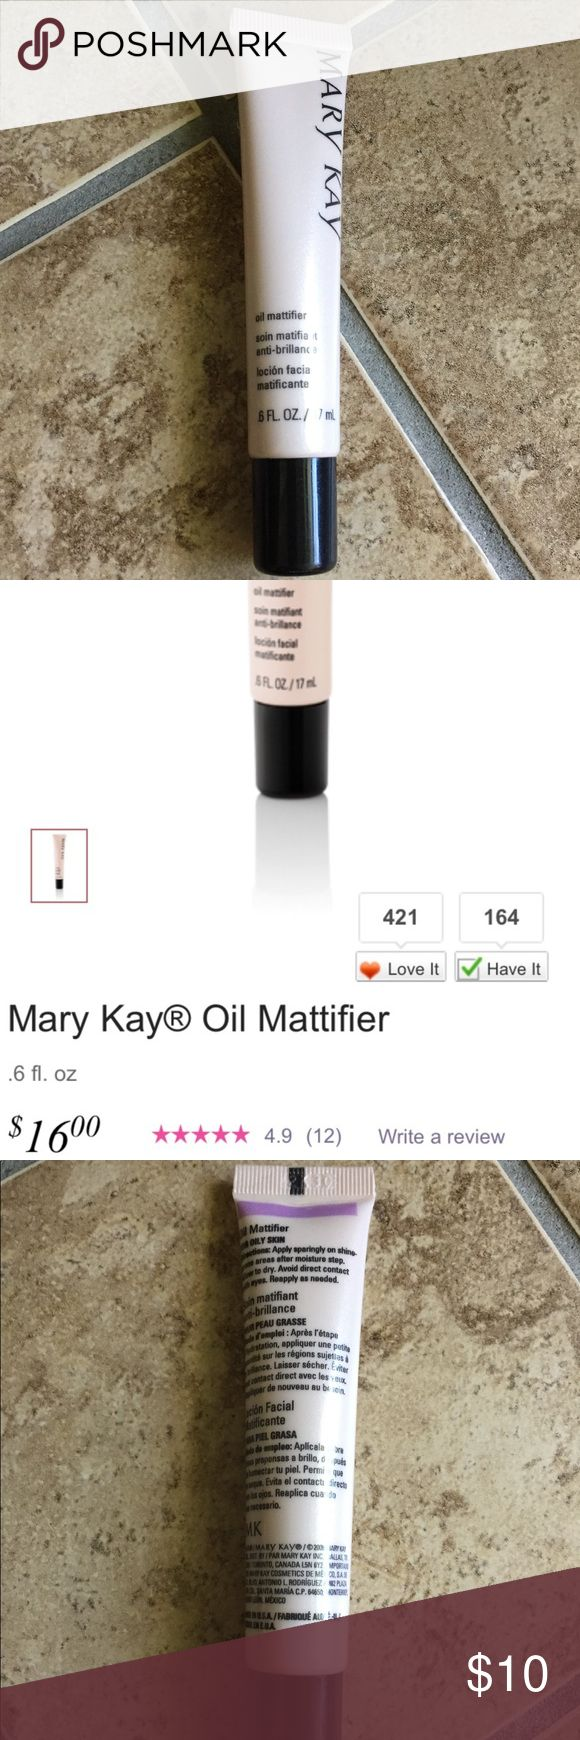 🆕 NWOT Mary Kay oil mattifier/primer Beauty blogger favorite primer and oil mattifier! Keeps makeup in place. Near perfect reviews online. Never used. Mary Kay Makeup Face Primer